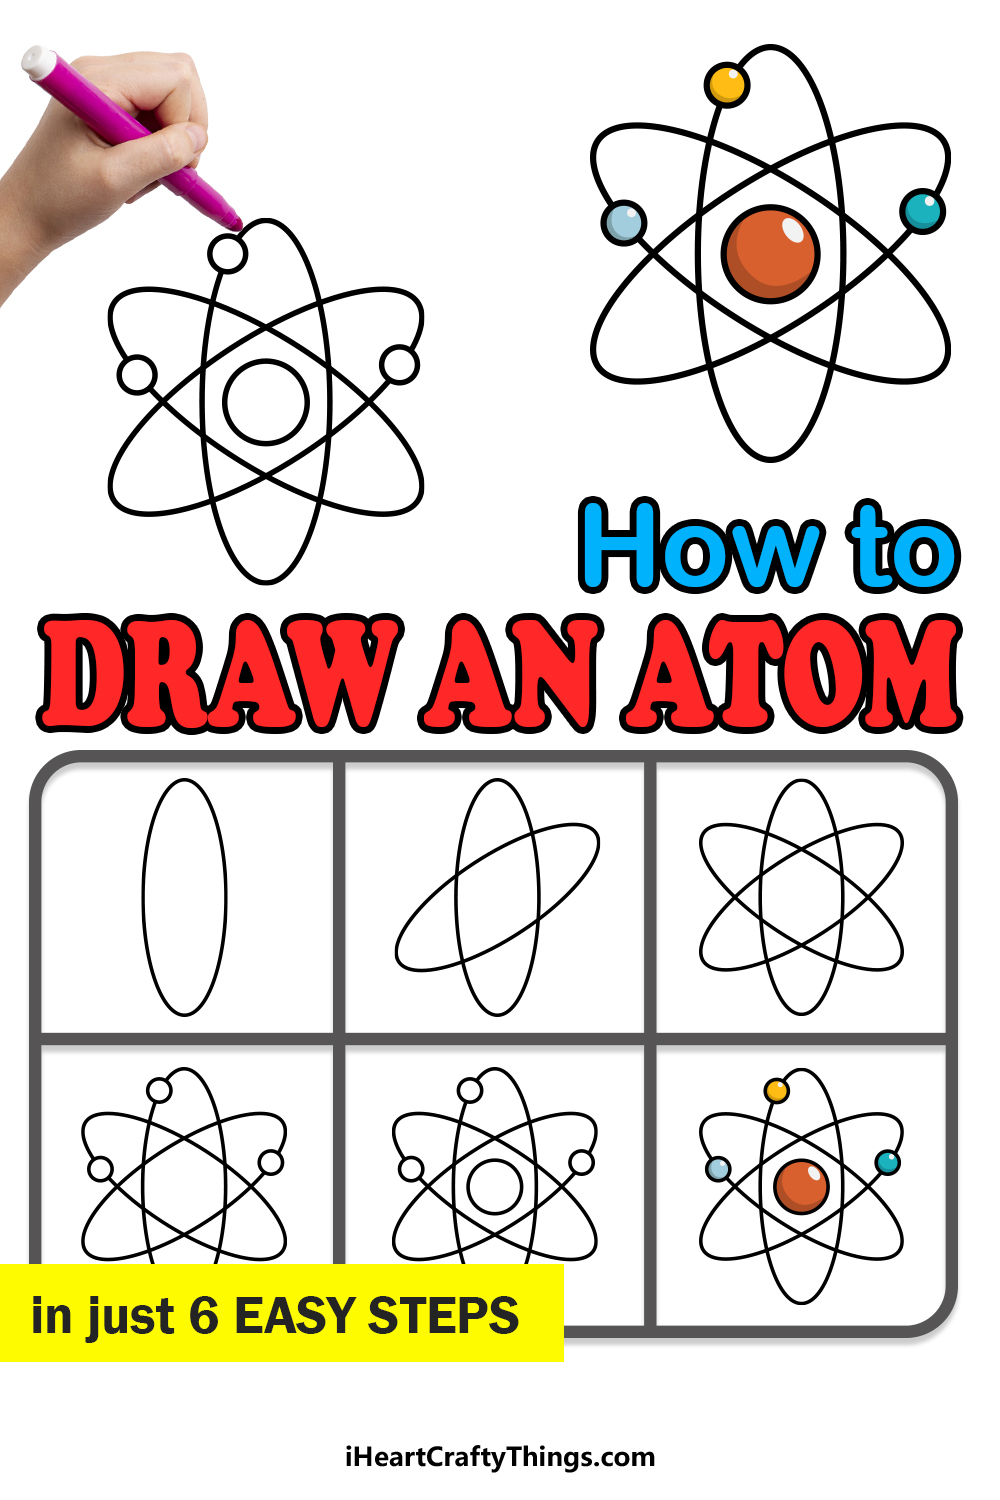 how to draw an atom in 6 easy steps